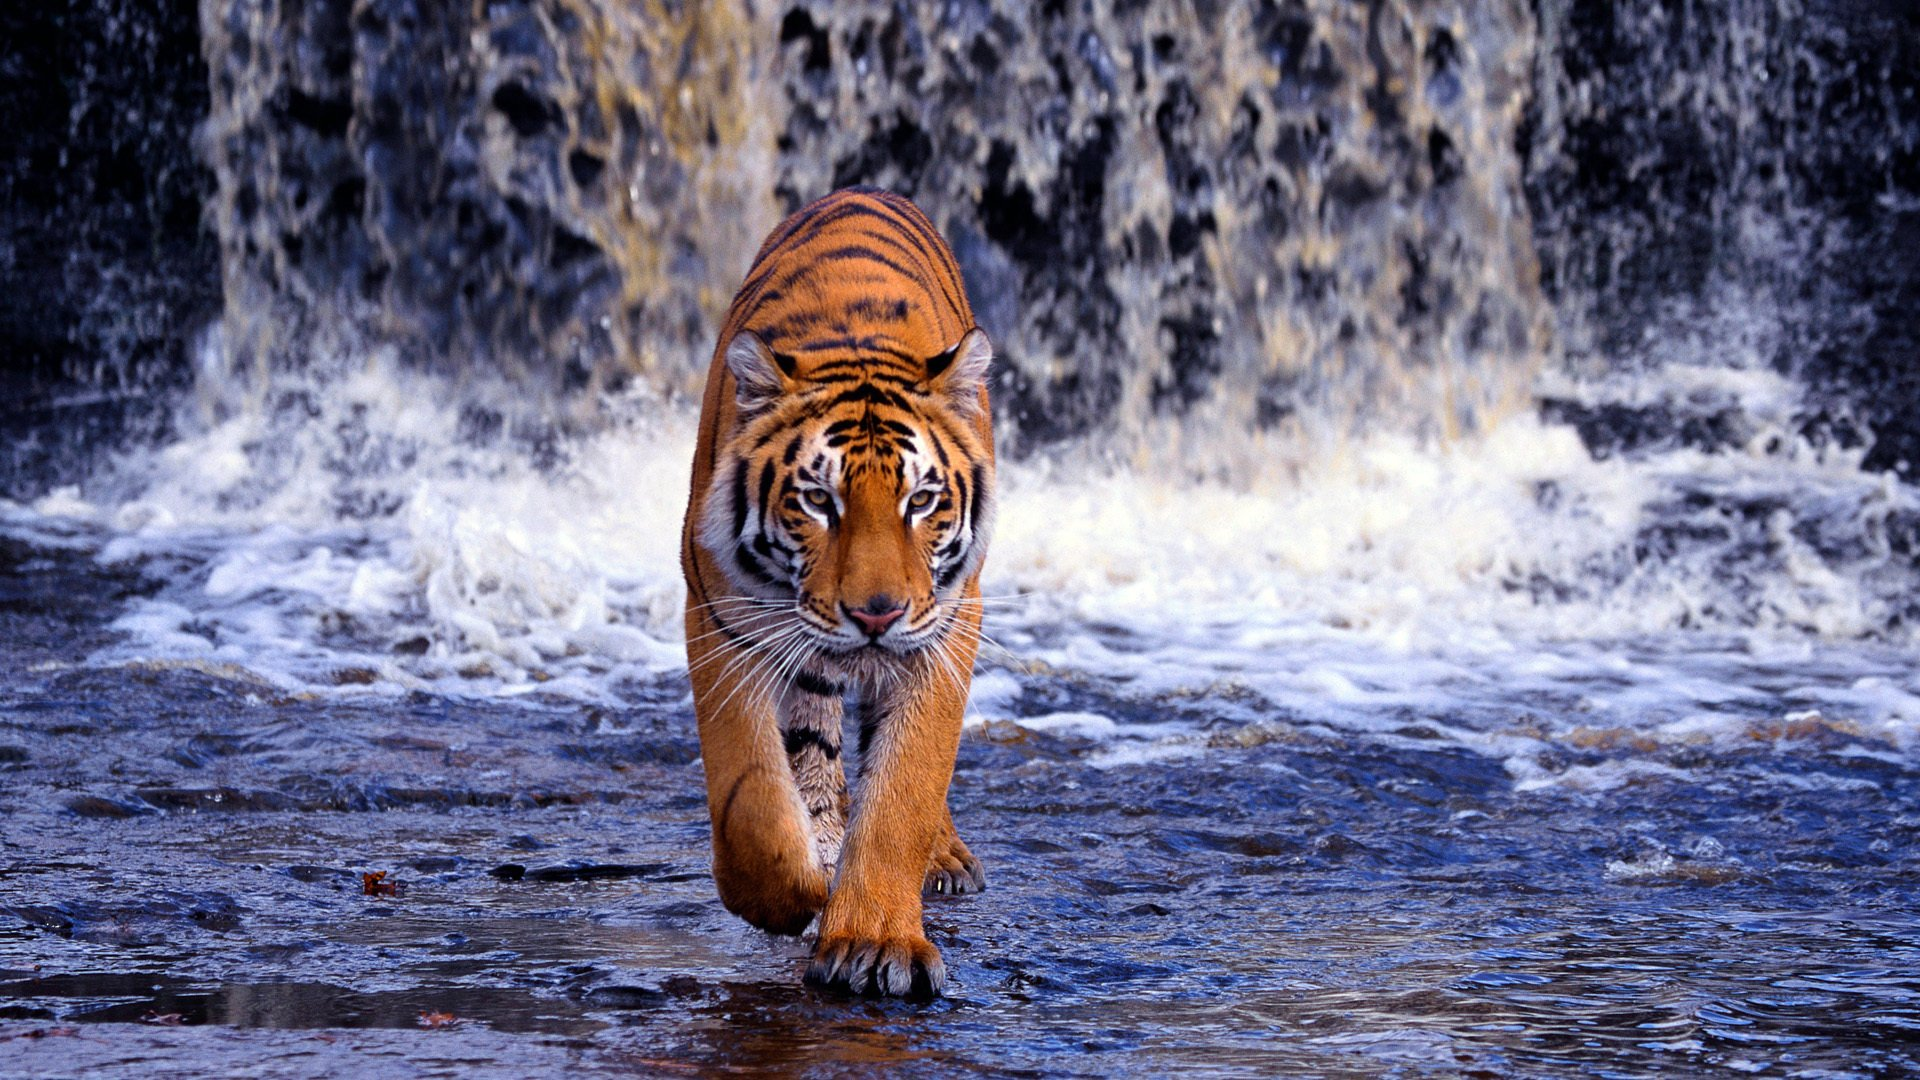 Tiger Hd Wallpaper Background Image 1920x1080 Id 352939